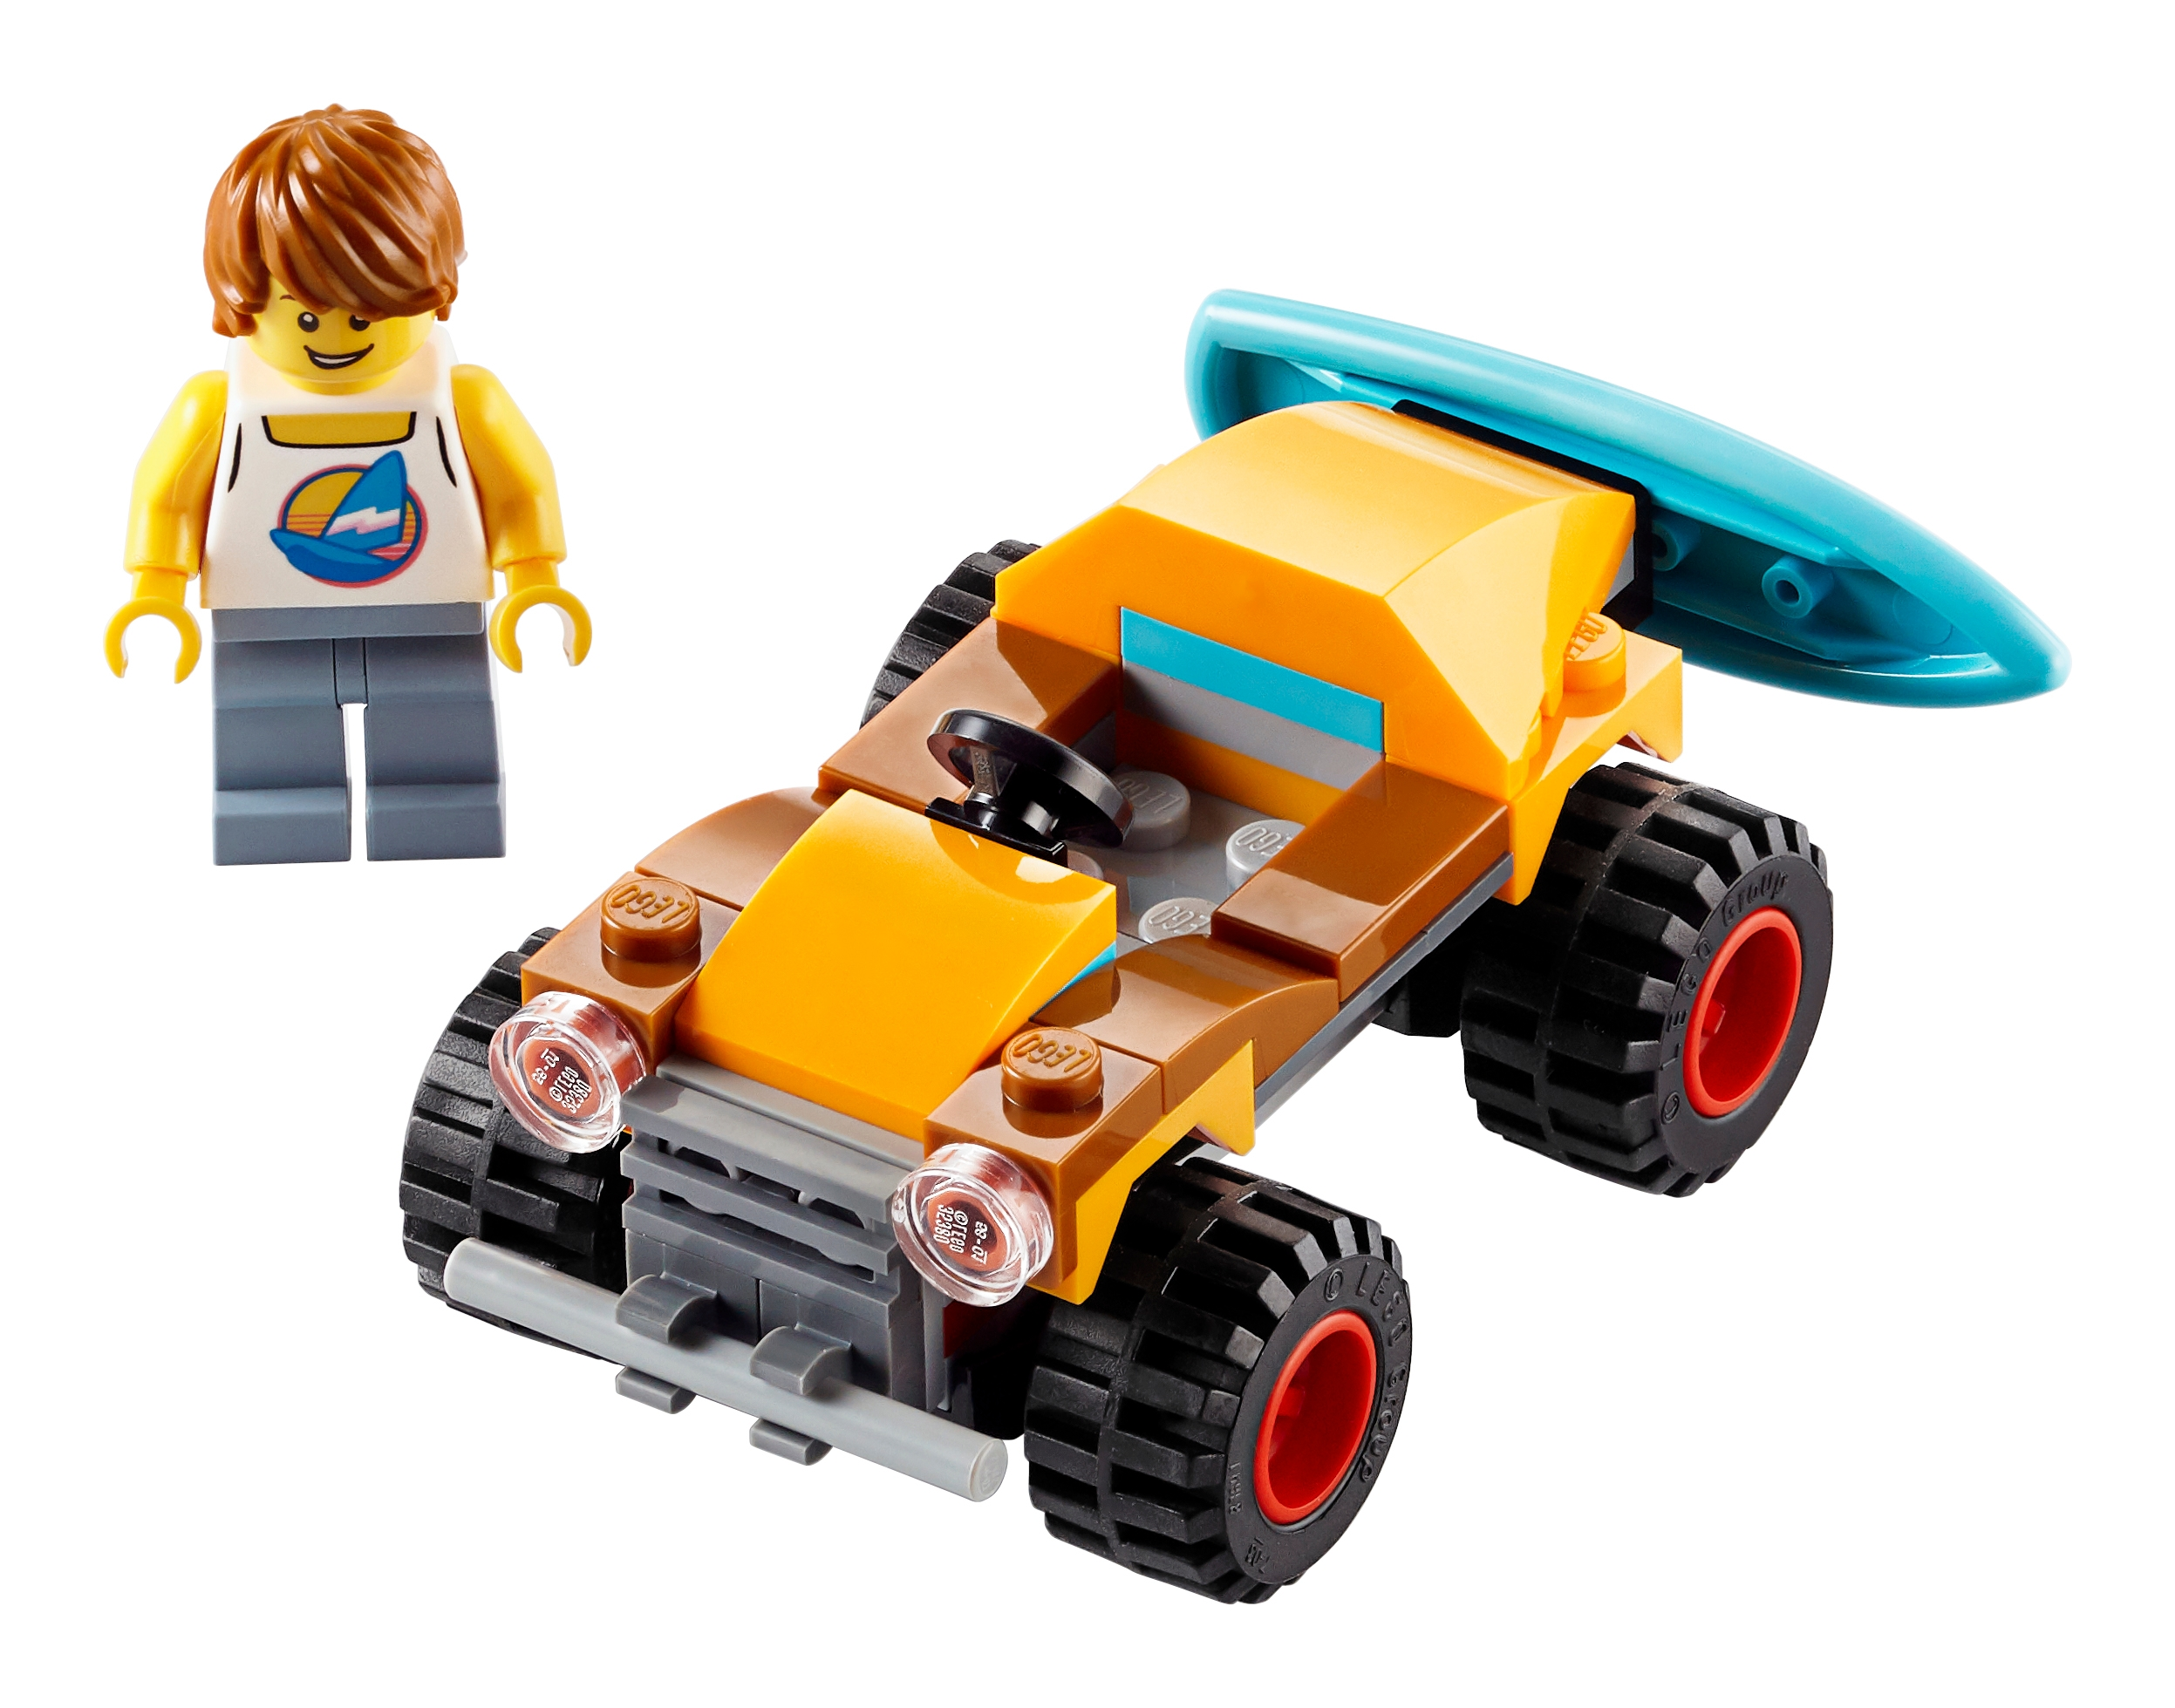 Lego 30369 Beach Buggy New in Polybags